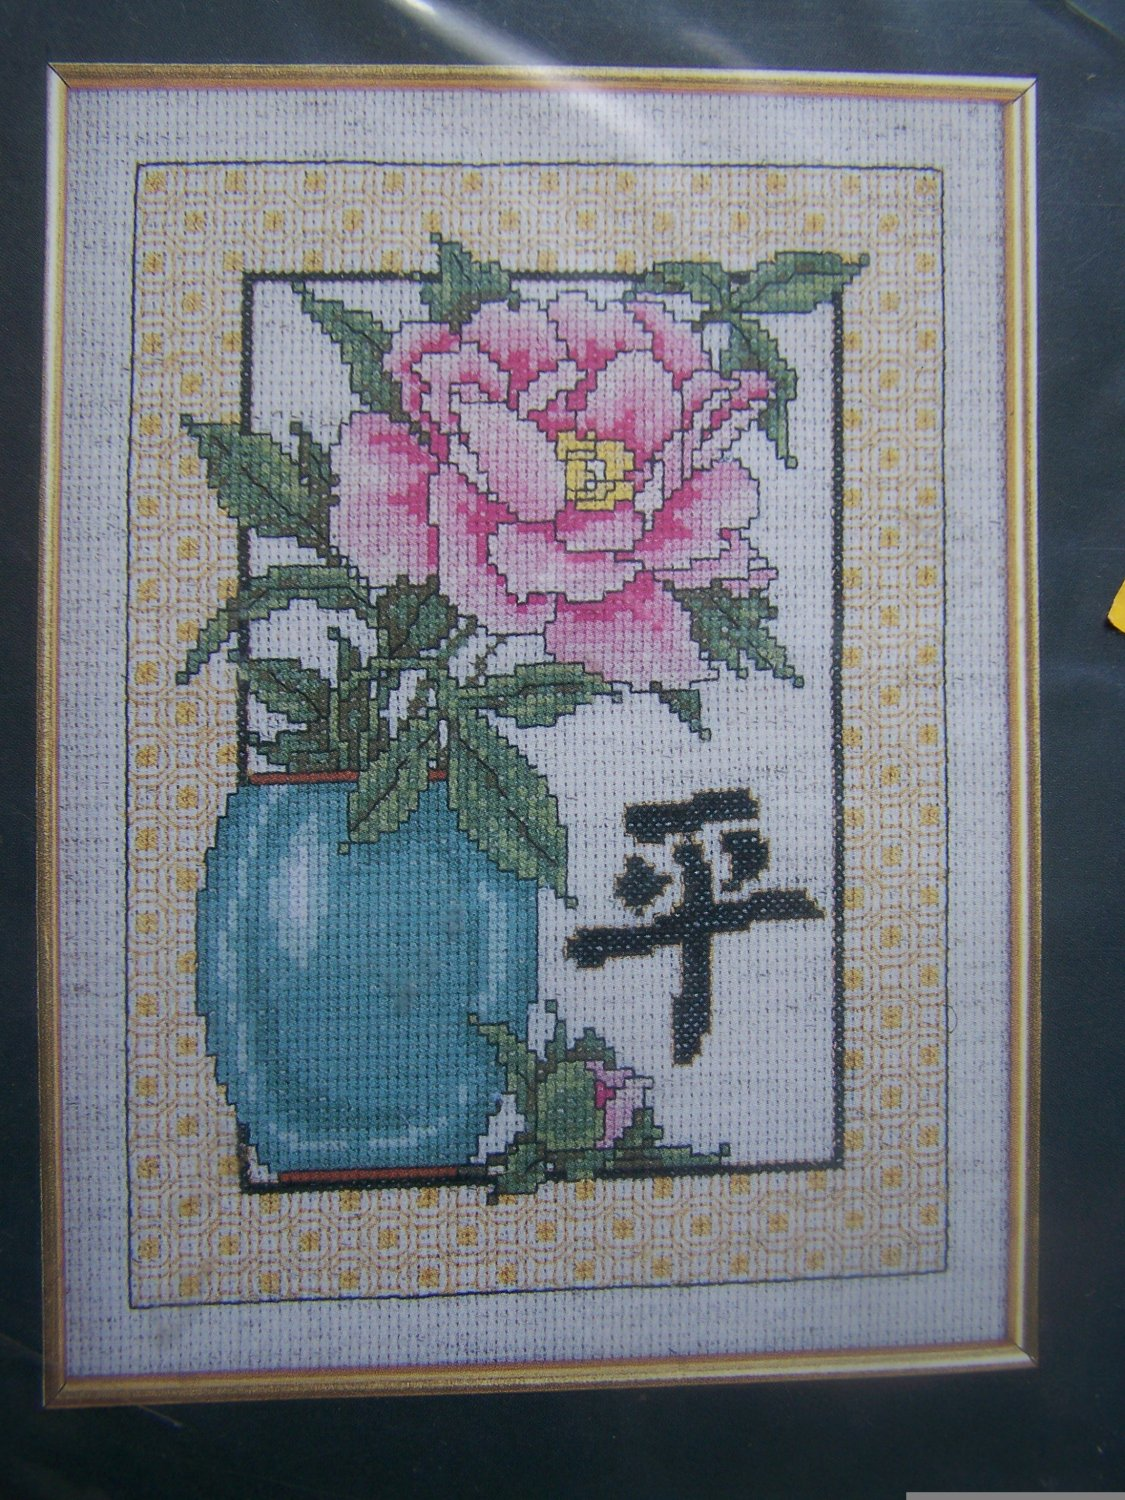 New FENG SHUI Counted Cross Stitch Craft Kit PEACE Pink Peonies 9902